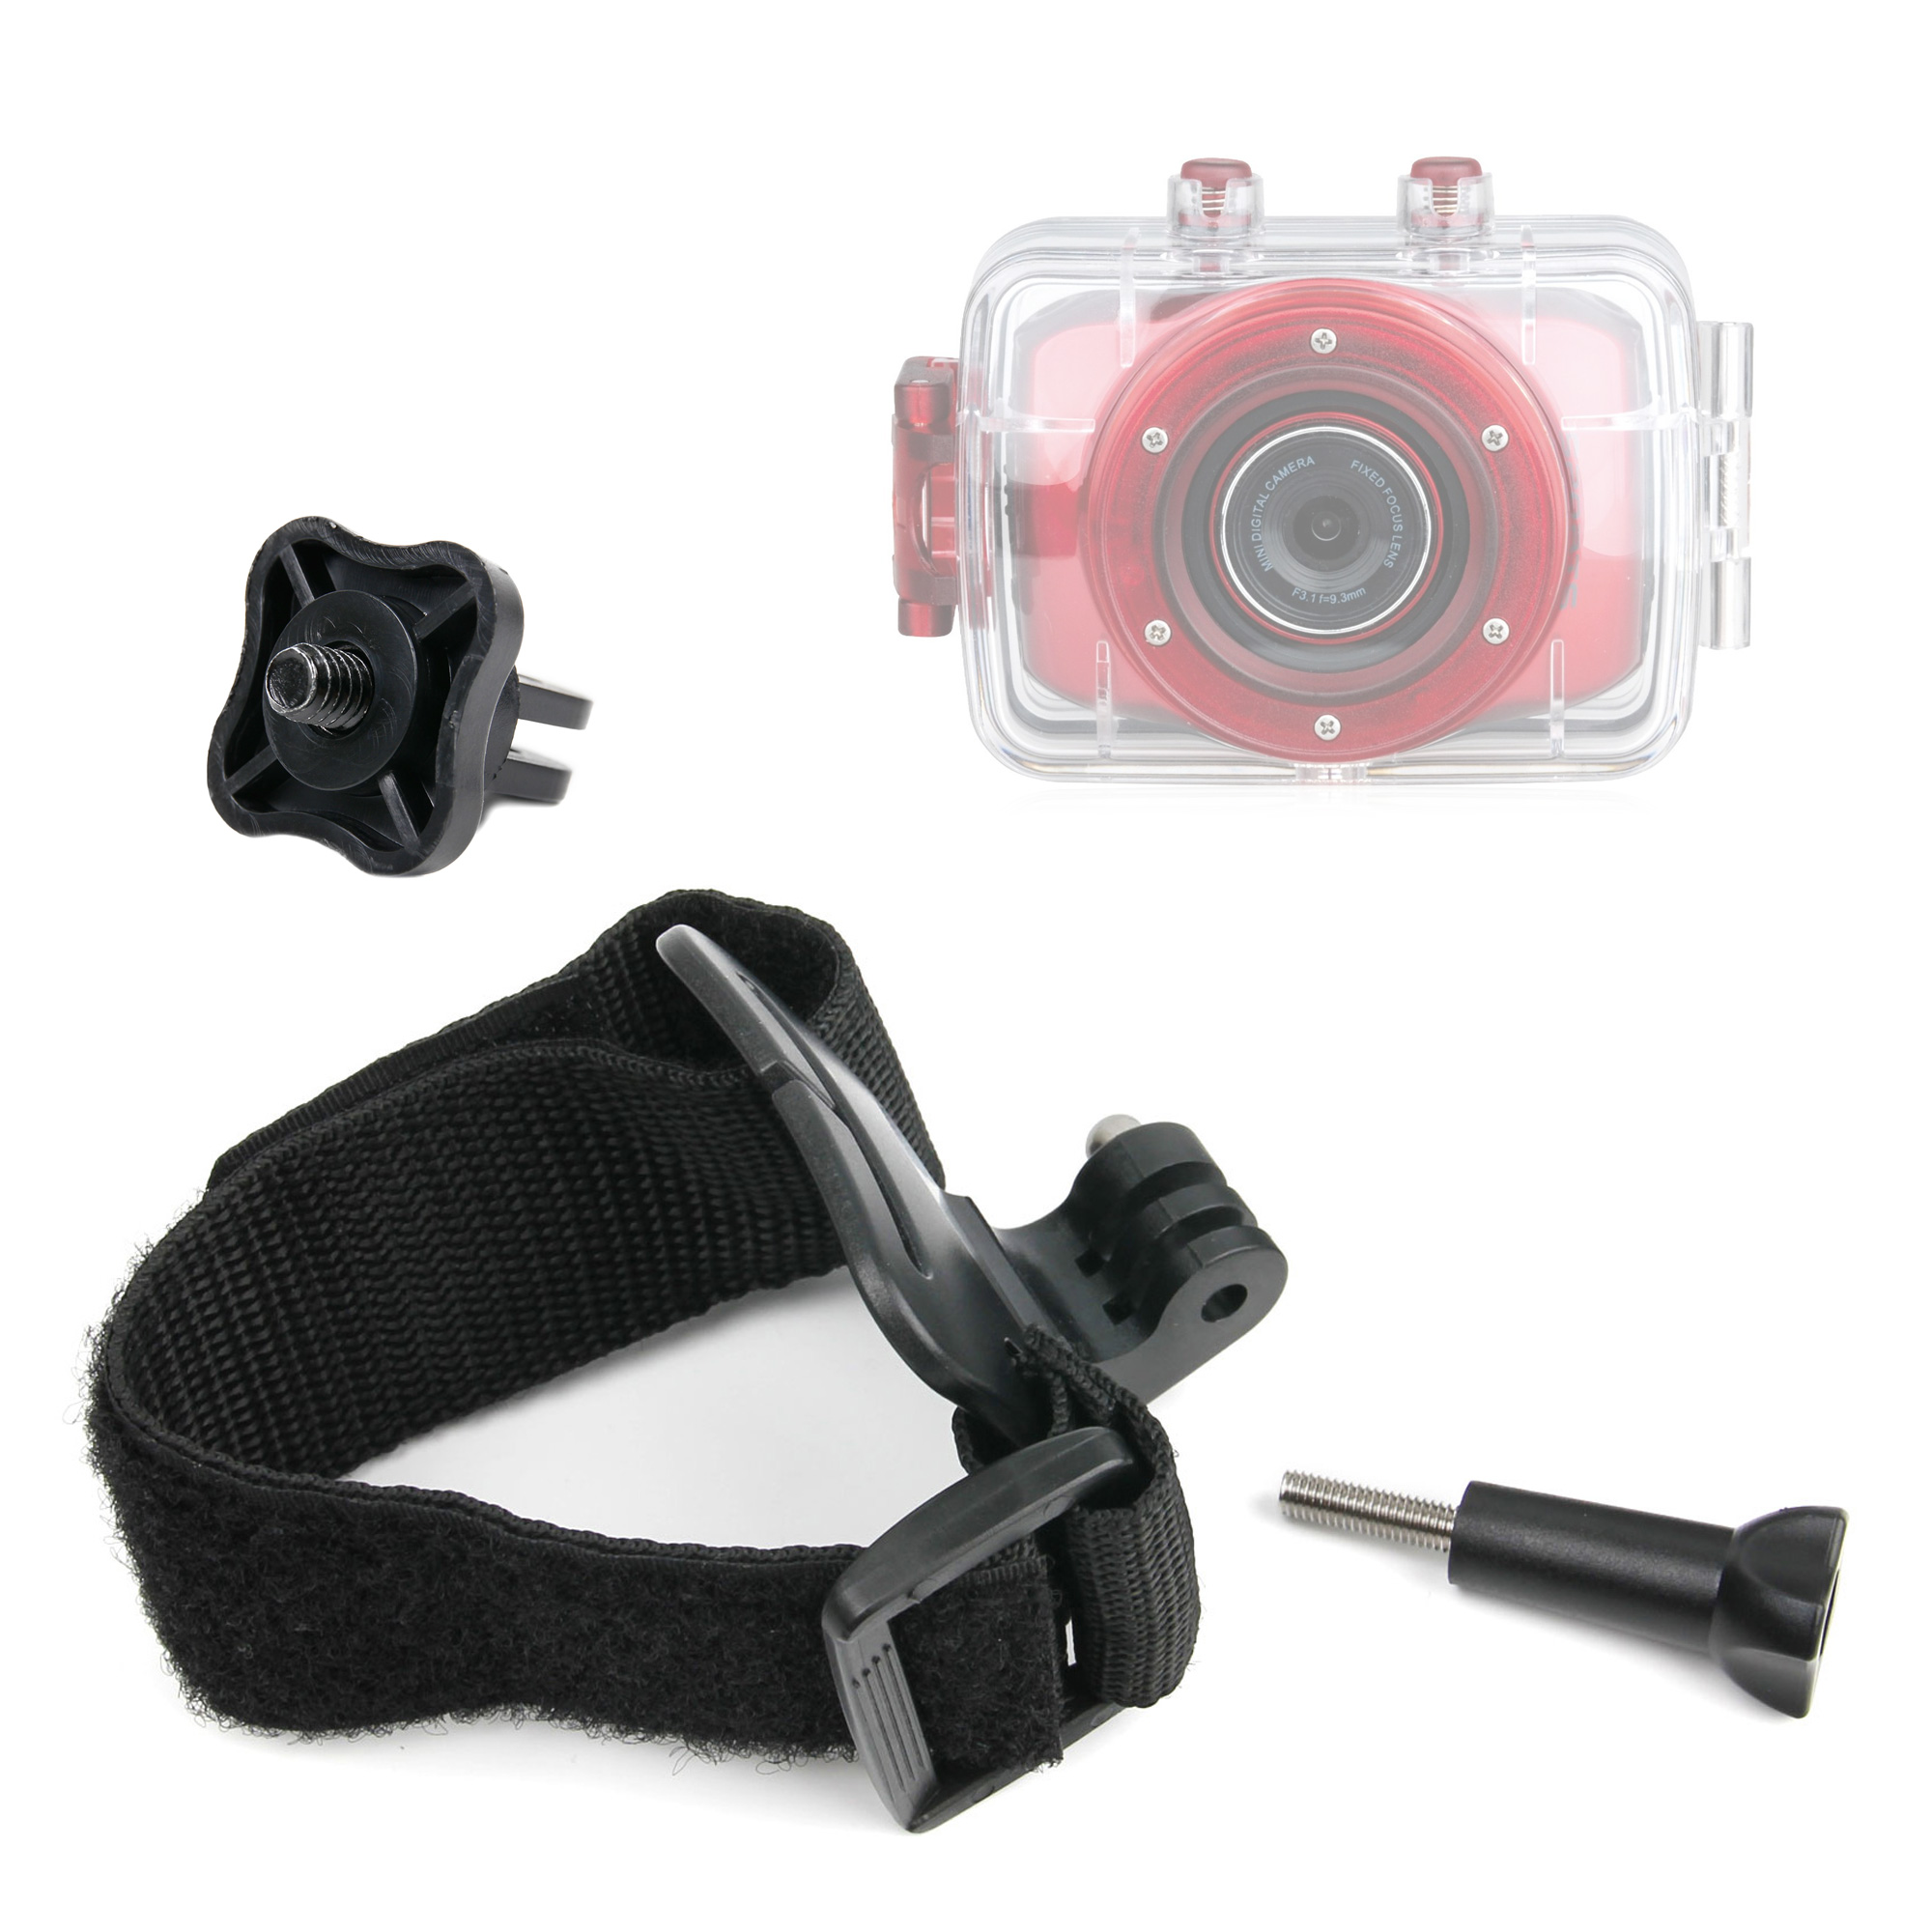 fixation poign e bracelet pour cam ra de sport cam scope gopro rollei pnj ebay. Black Bedroom Furniture Sets. Home Design Ideas